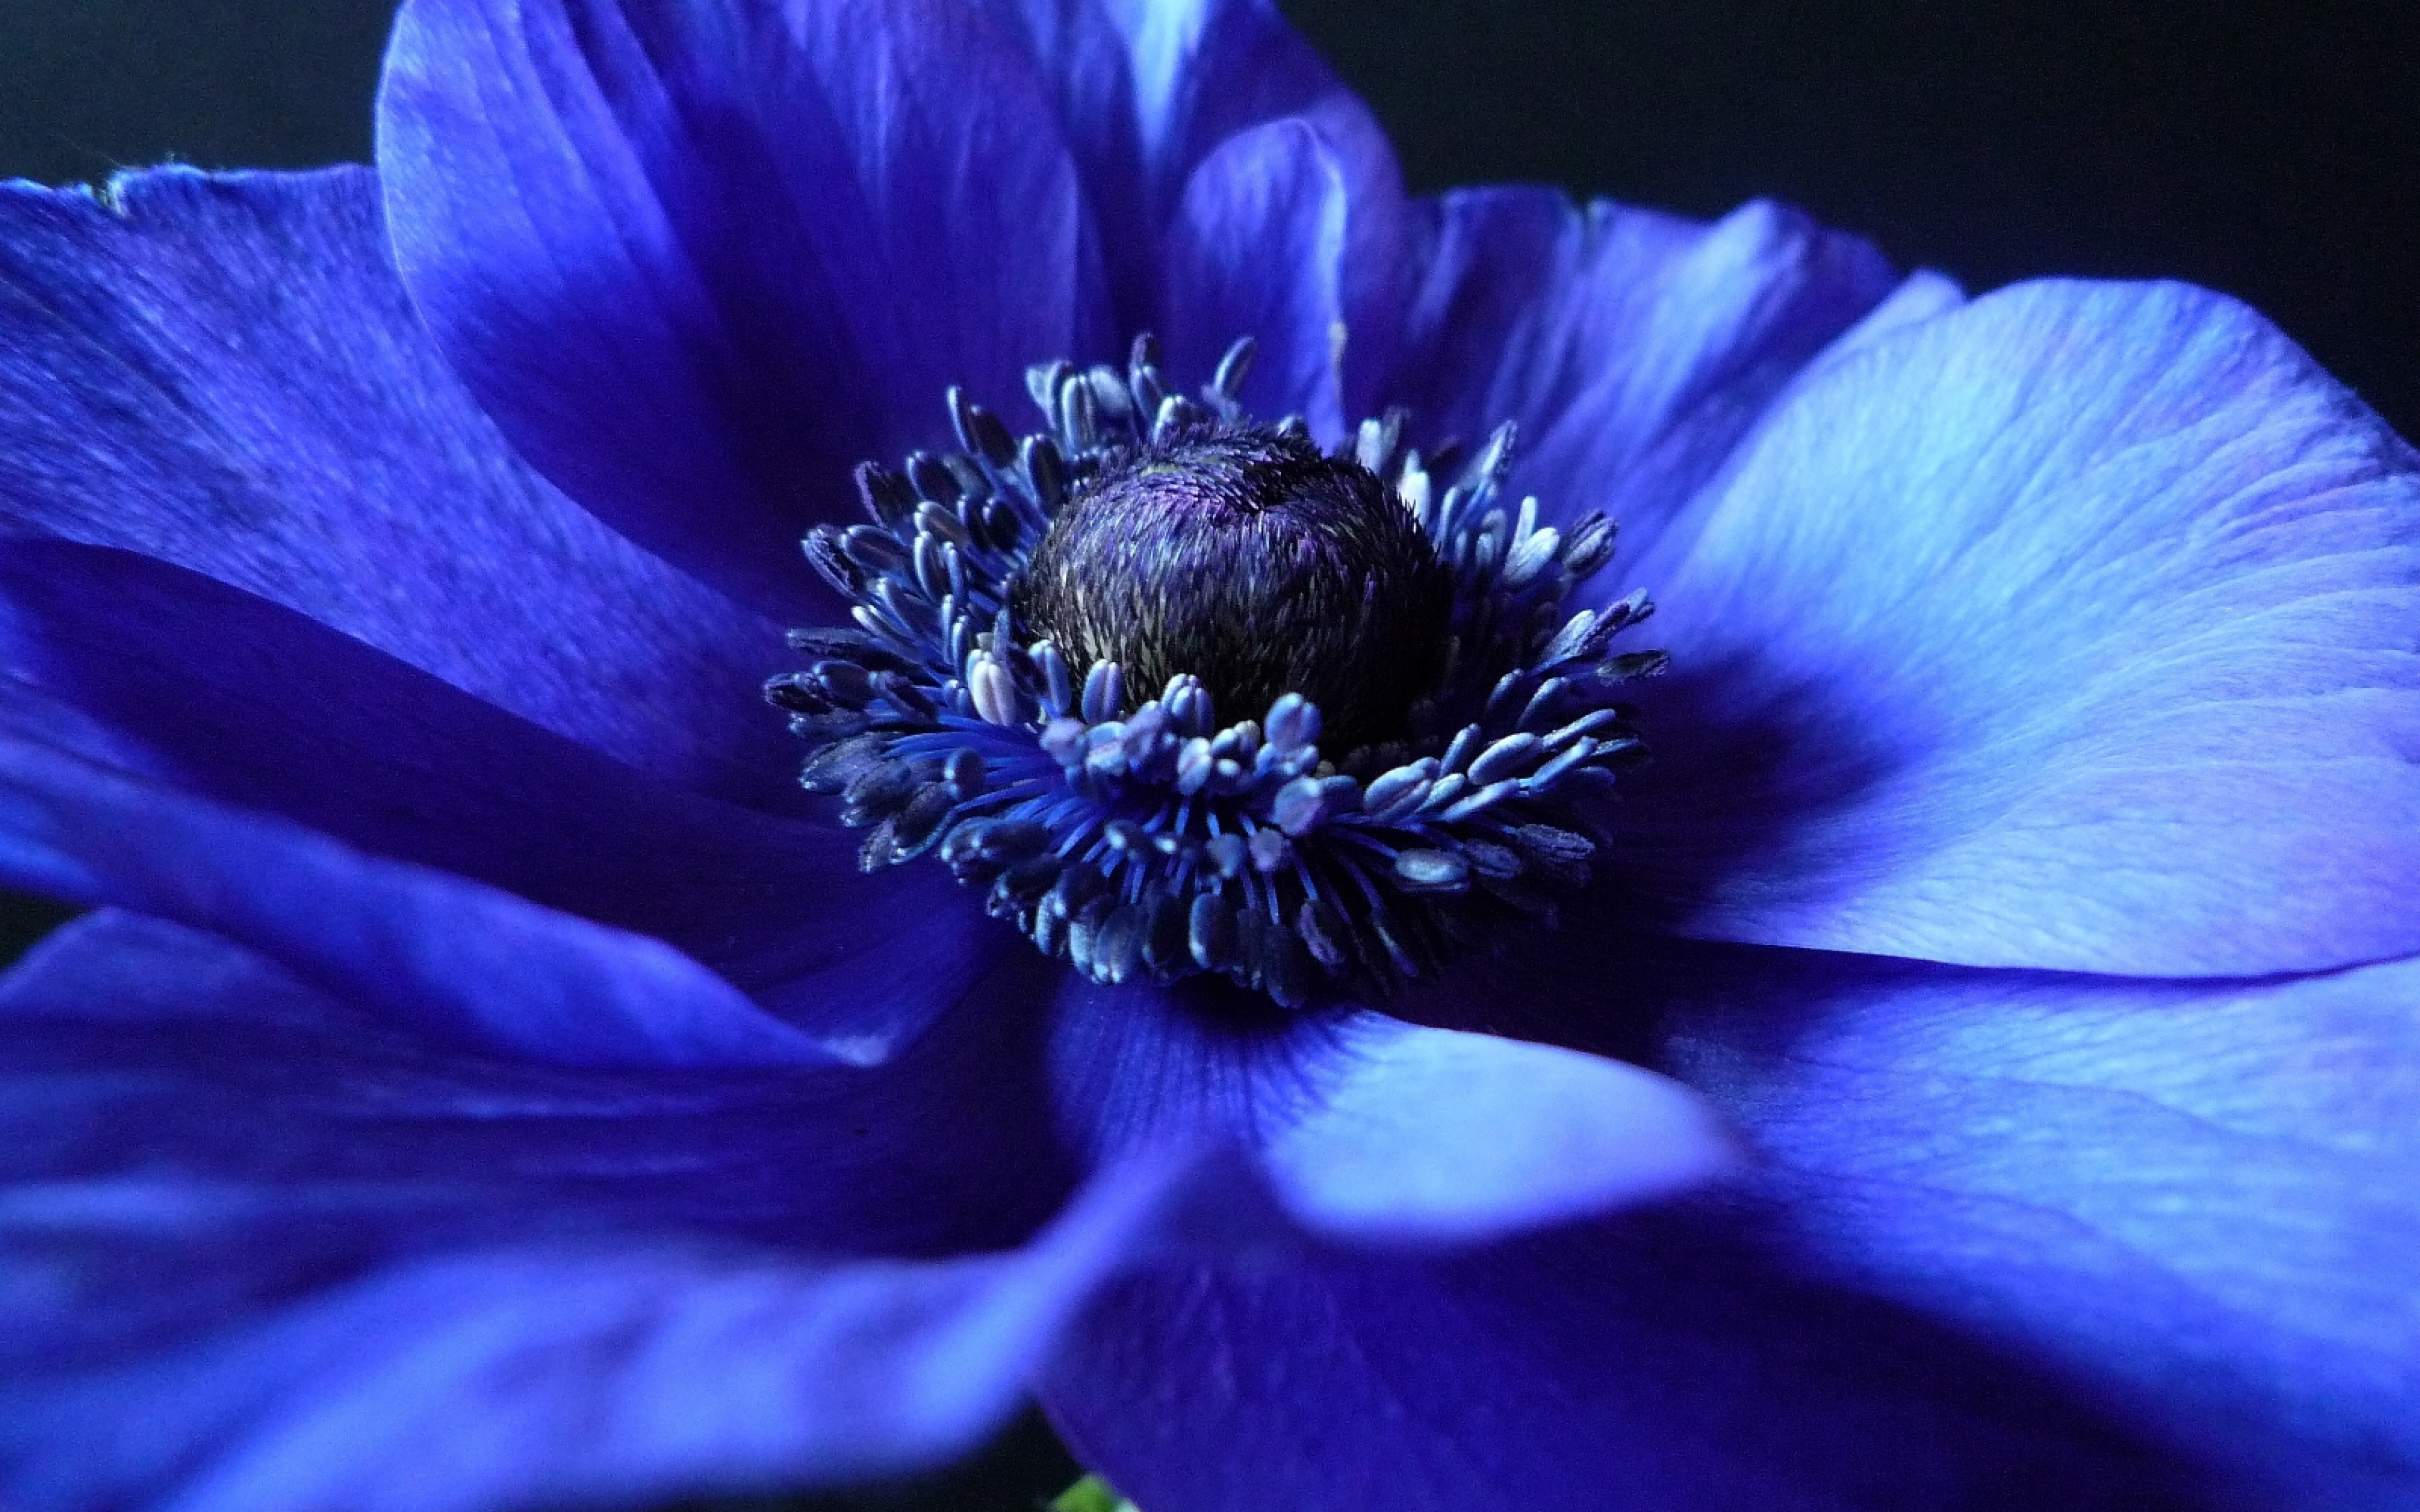 4k Blue Flowers Wallpapers High Quality Download Free